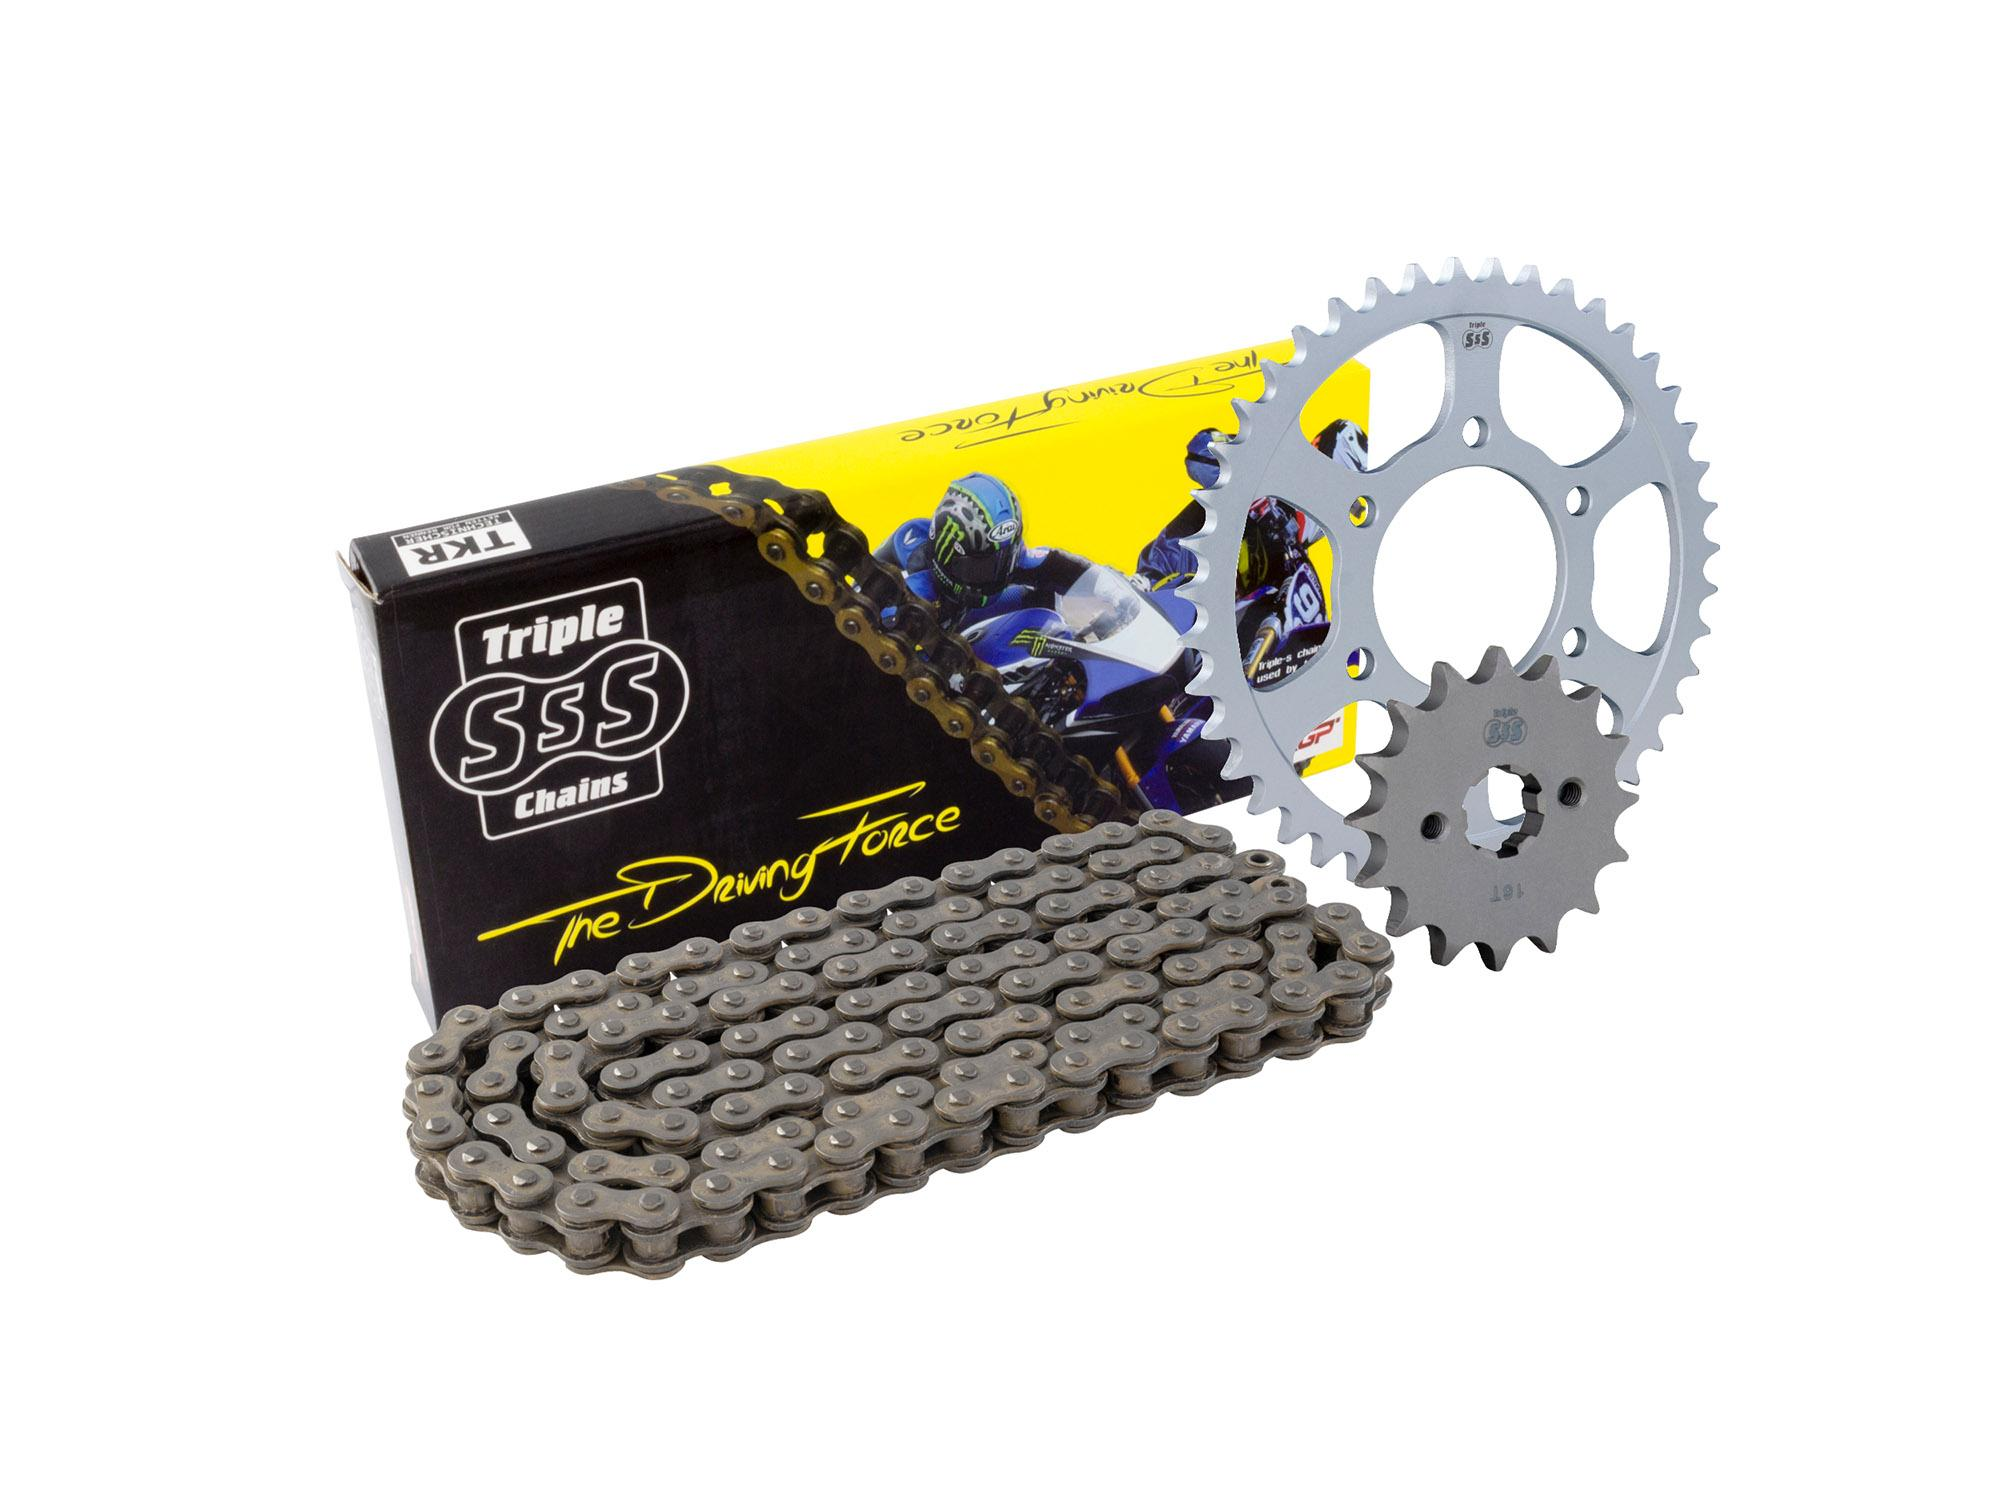 Kawasaki KLE500 B6F/B7F 06-07 Chain & Sprocket Kit: 17T Front, 44T Rear, HD O-Ring Black Chain 520H 110Link